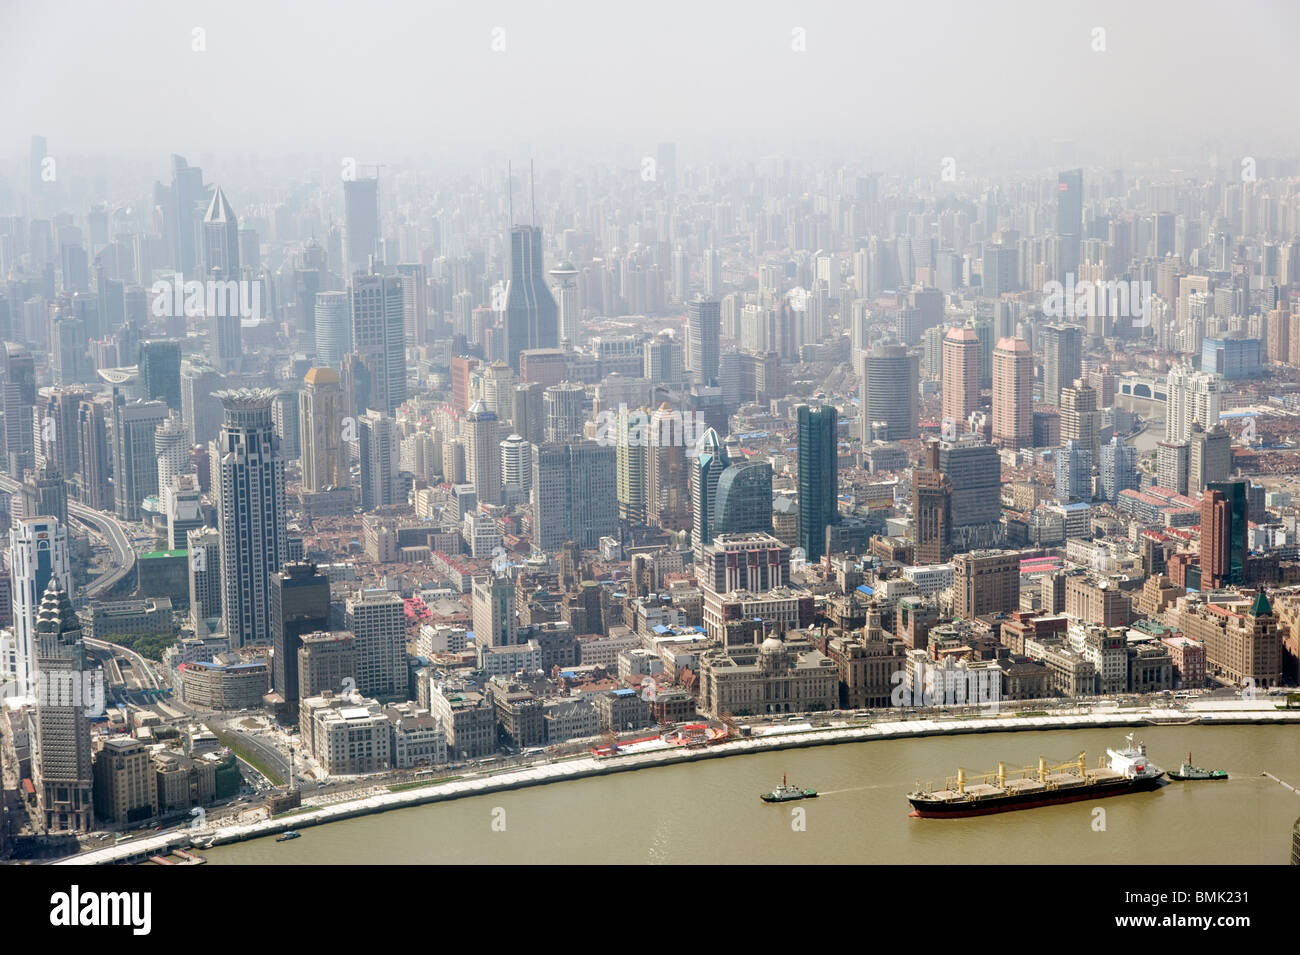 Le smog et la pollution sur la ville (vue de dessus, Shanghai, Chine Photo Stock